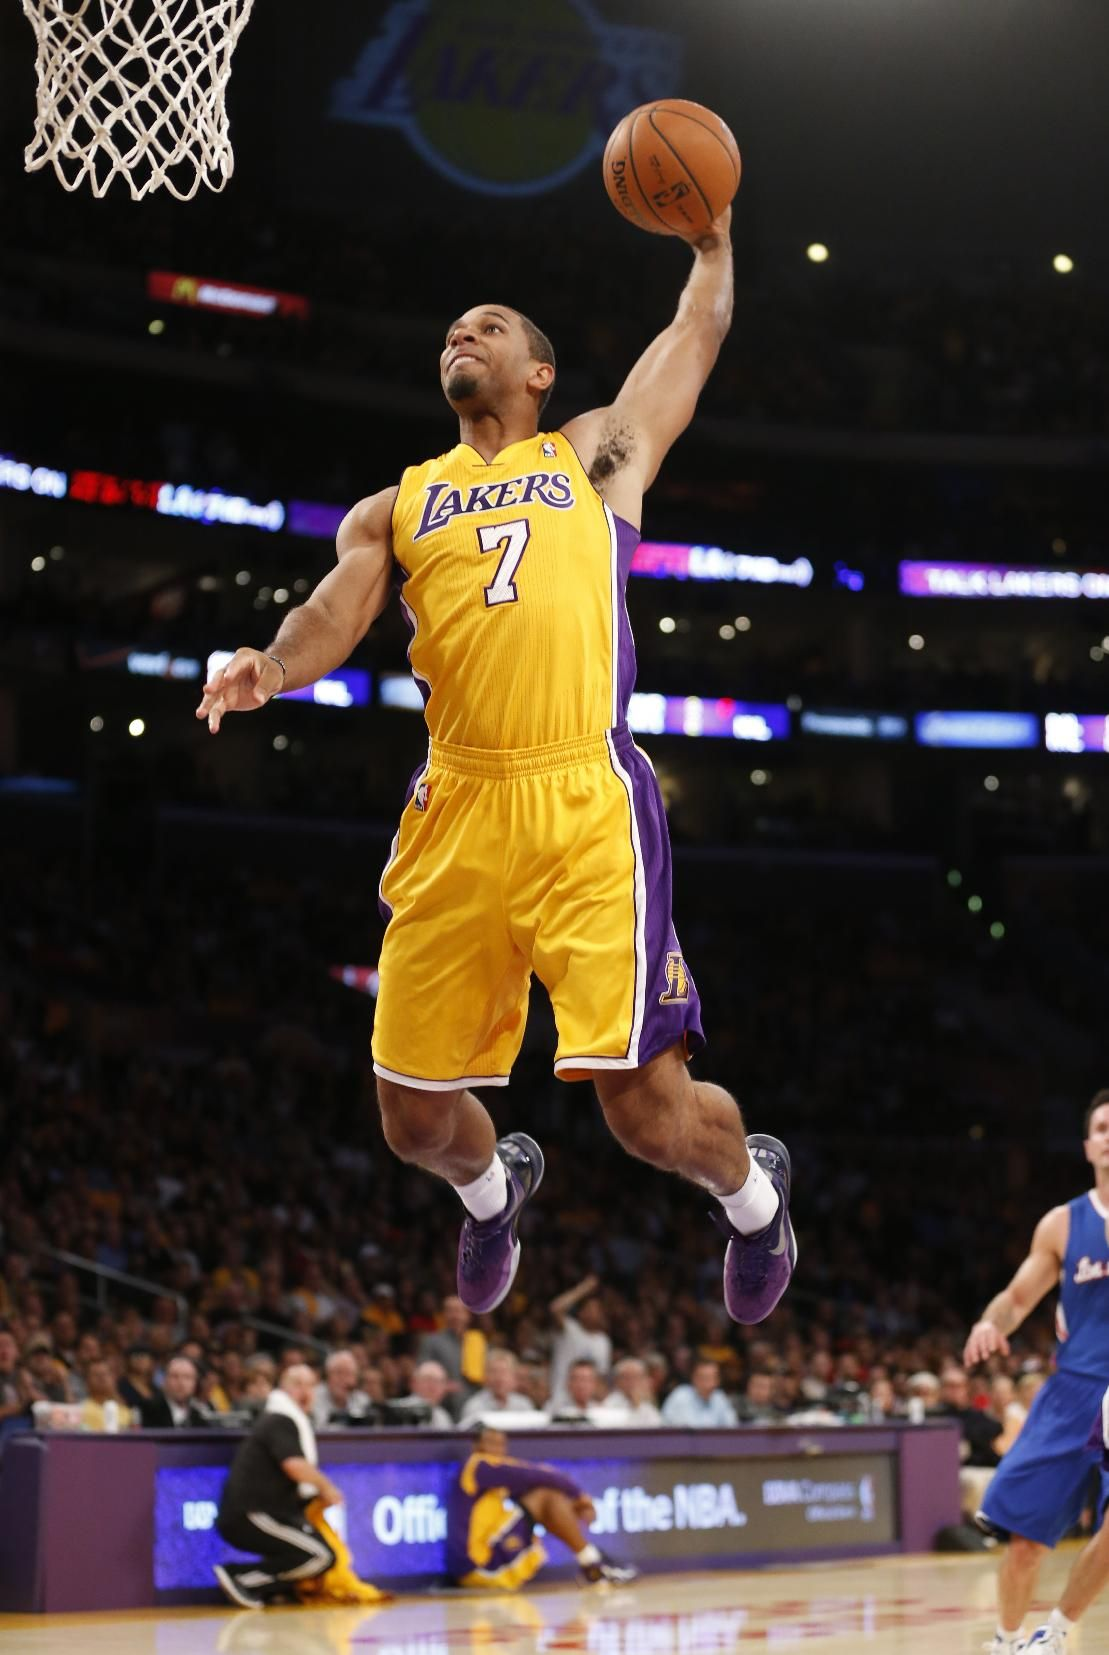 Los Angeles Lakers' Xavier Henry dunks the ball against